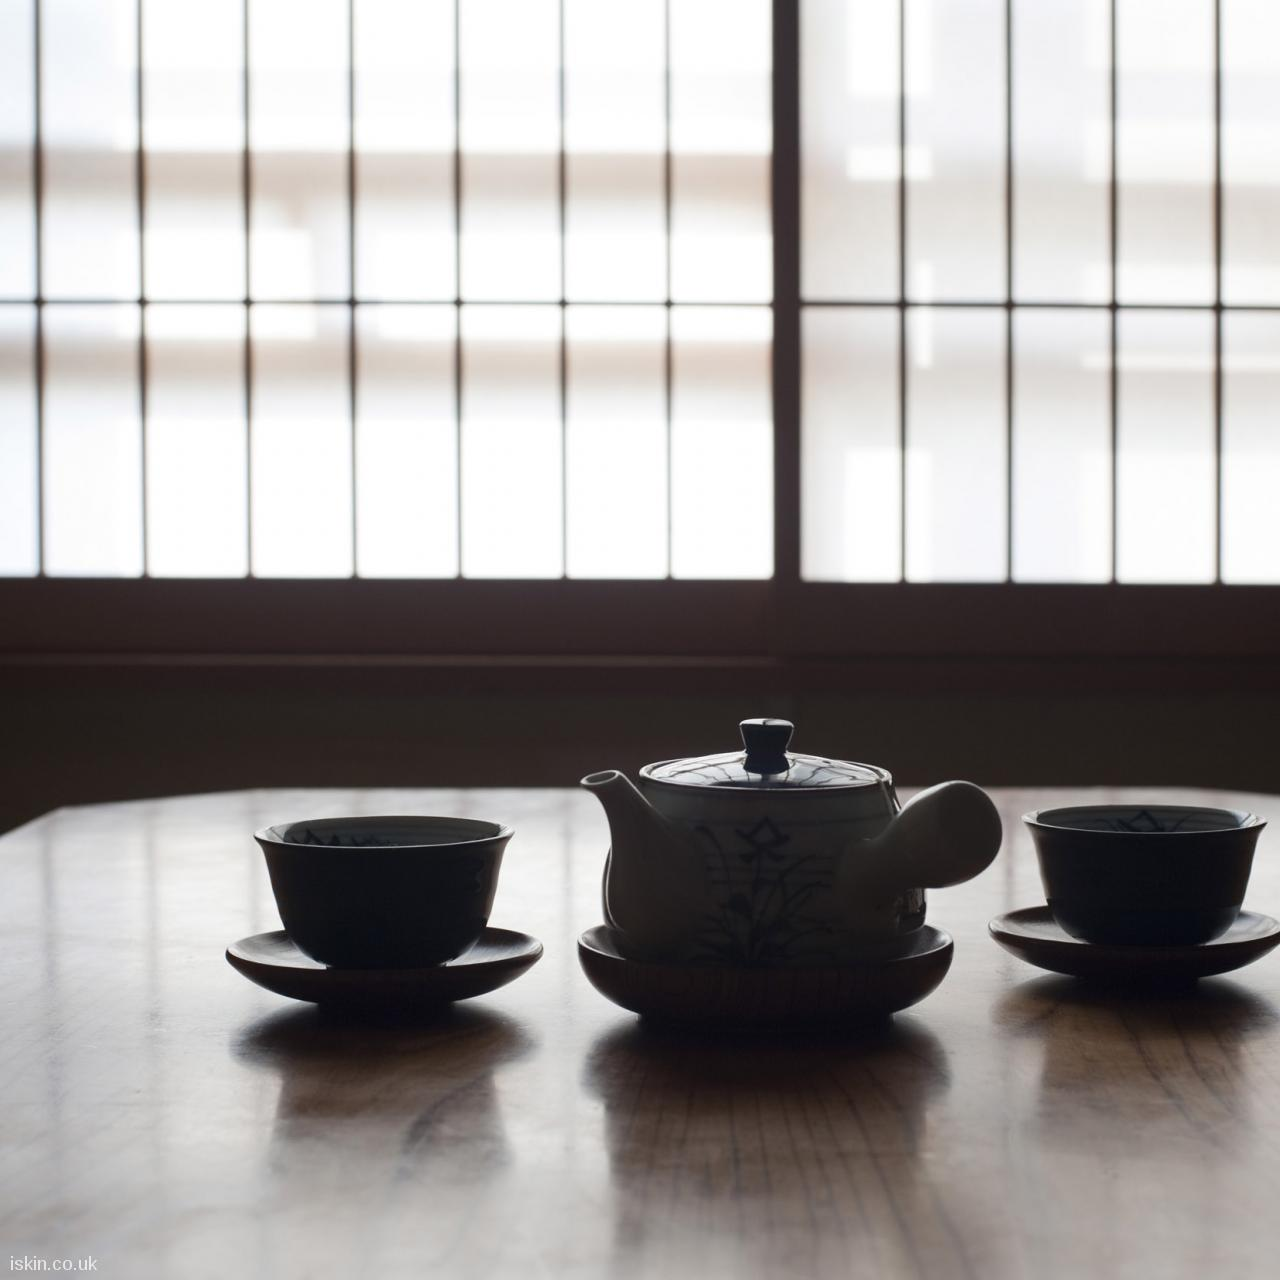 android table squarejapanese tea set